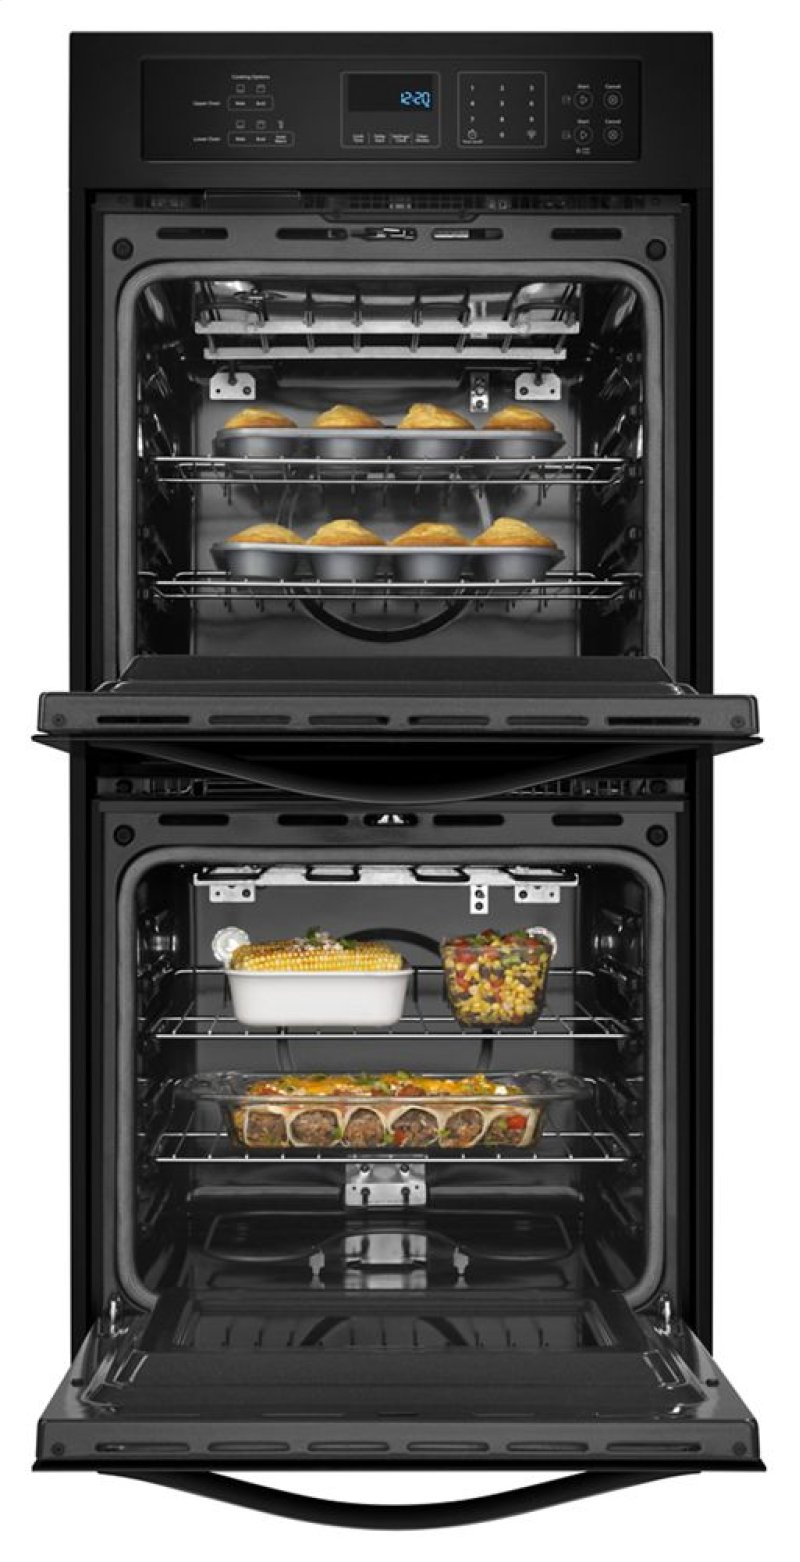 toaster clean wall double cooking oven electric ovens self ft total whirlpool cu convection cleaning